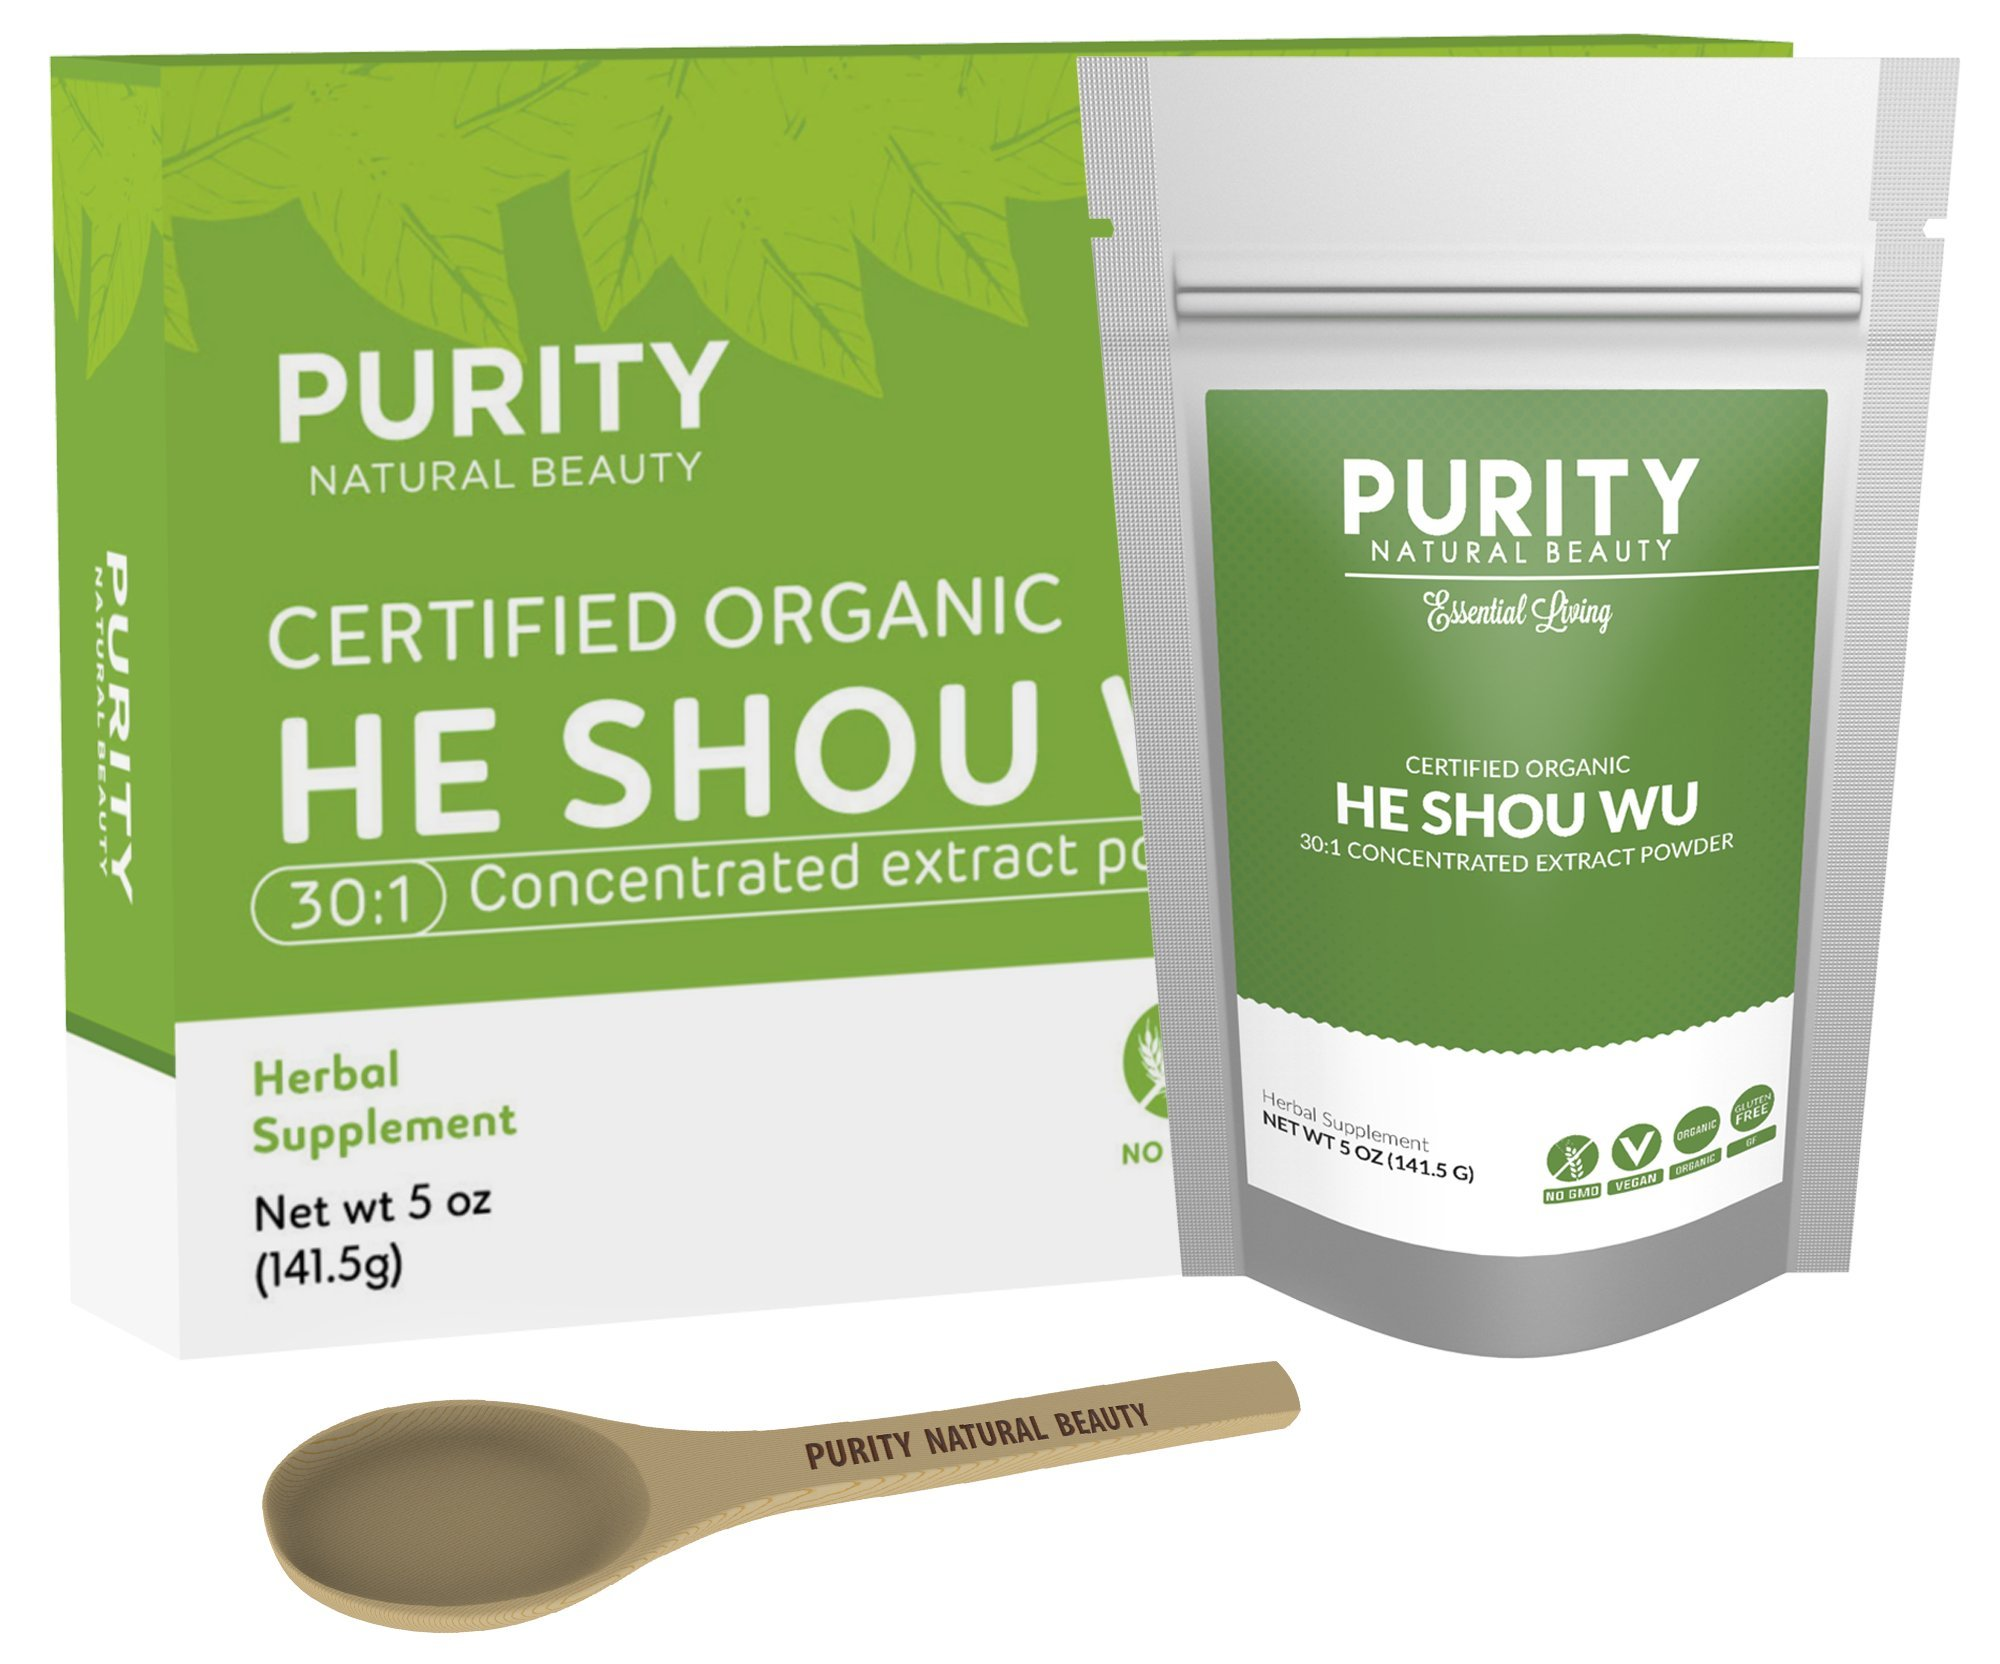 Certified Organic He Shou Wu - Large 5oz Bag, 30:1 Potency Fo Ti for Maximum Effectiveness, Traditionally Prepared, Pleasantly Mild Taste, Dissolves Easily in Coffee Or Tea, Concentrated Extract